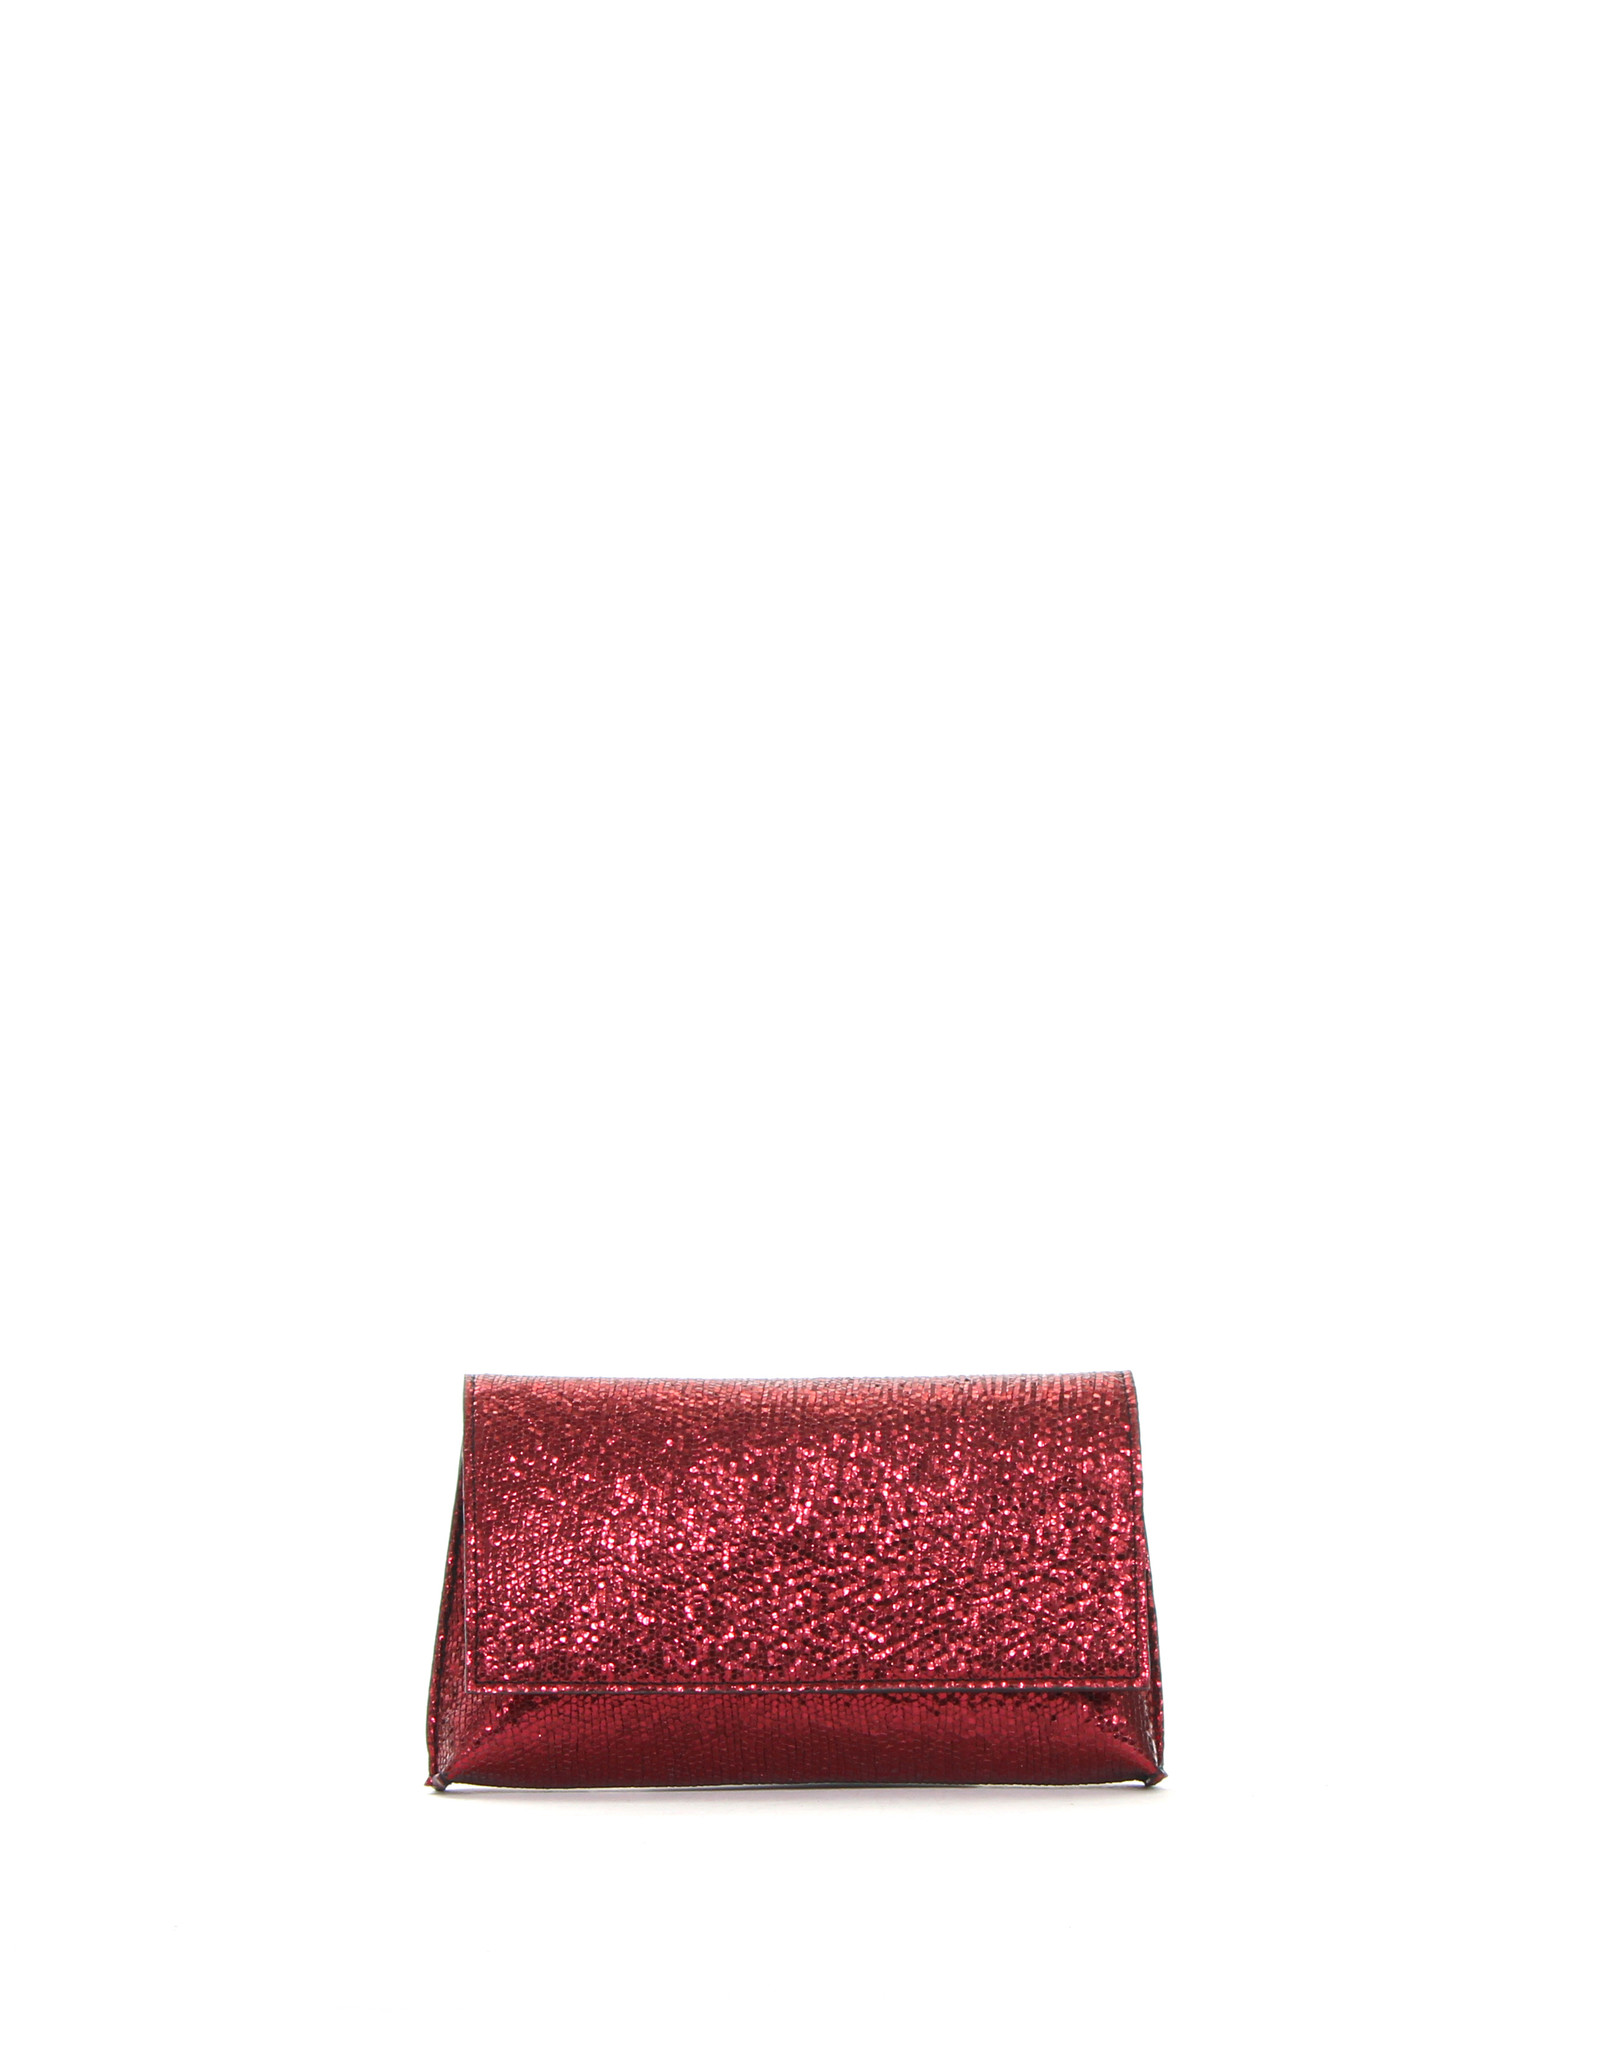 B.MAY BAGS - Small Foldover Clutch